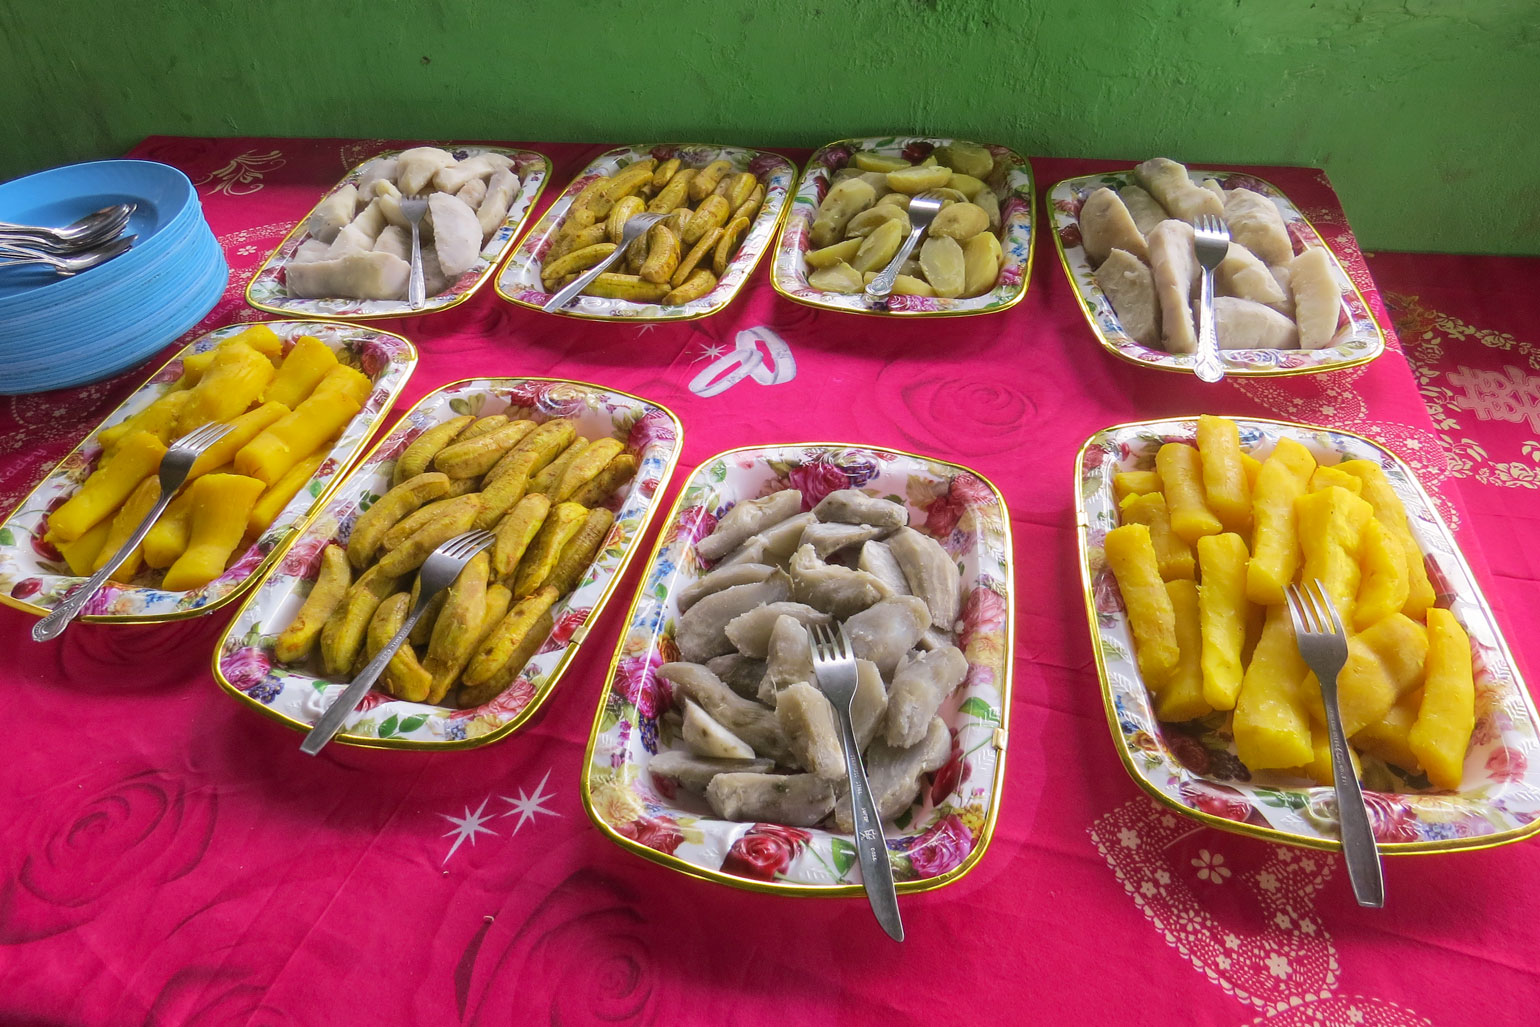 Where is cassava from? - Table covered in a red table cloth has eight trays on it, each containing root vegetables in white, grey and yellow.